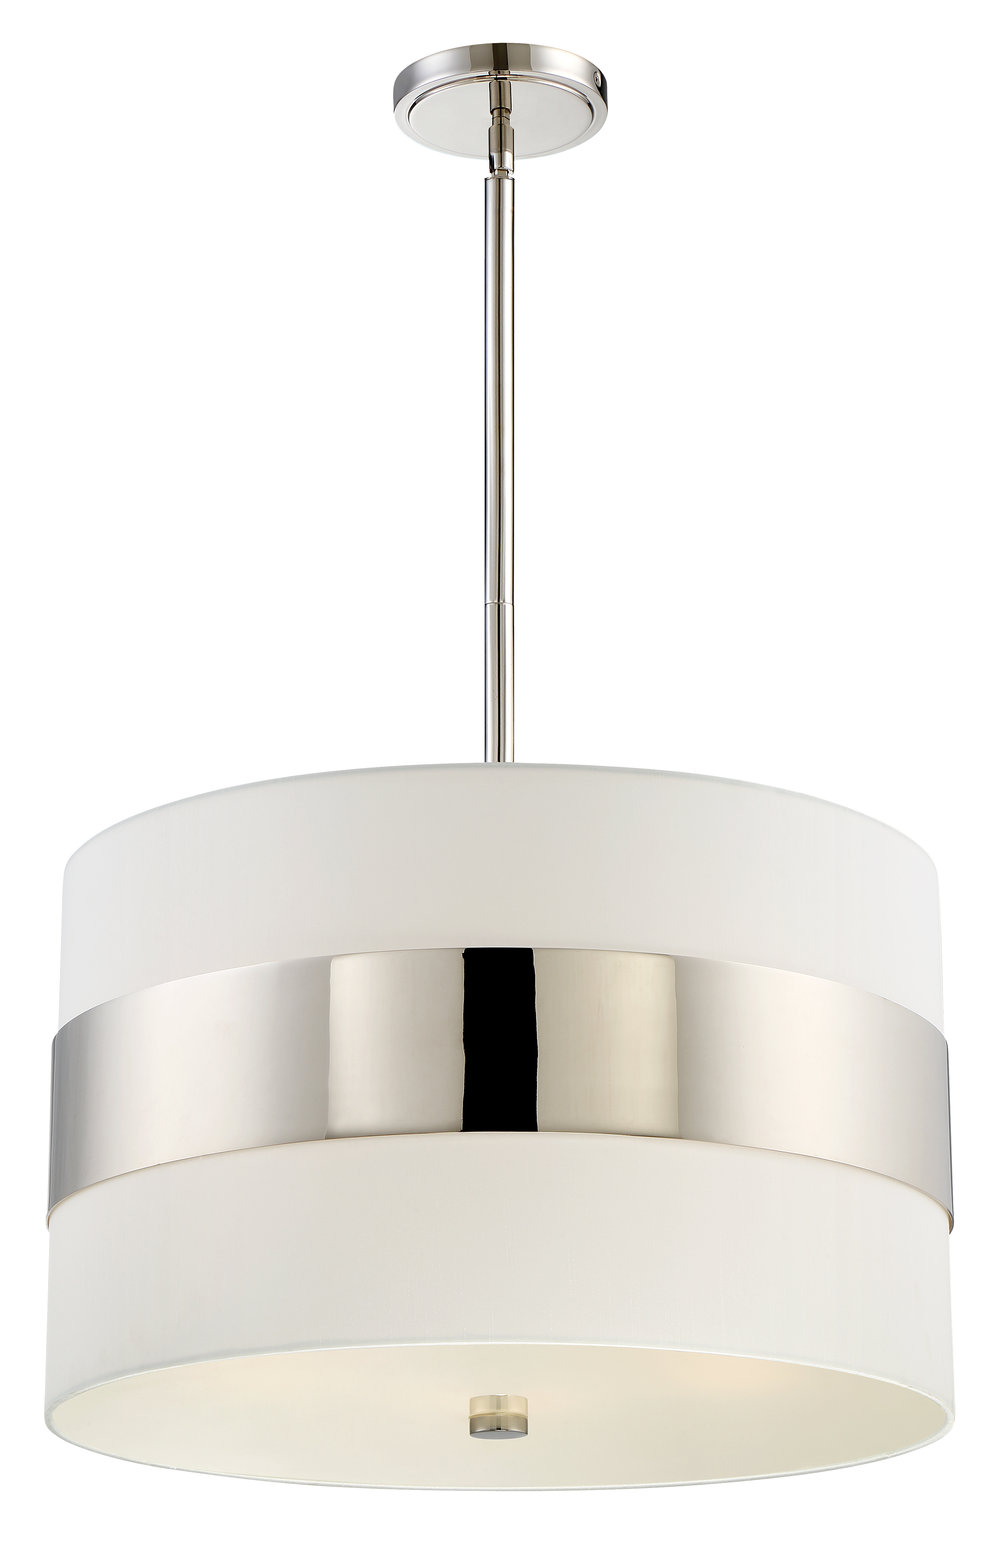 Grayson 5 Light Polished Nickel Pendant